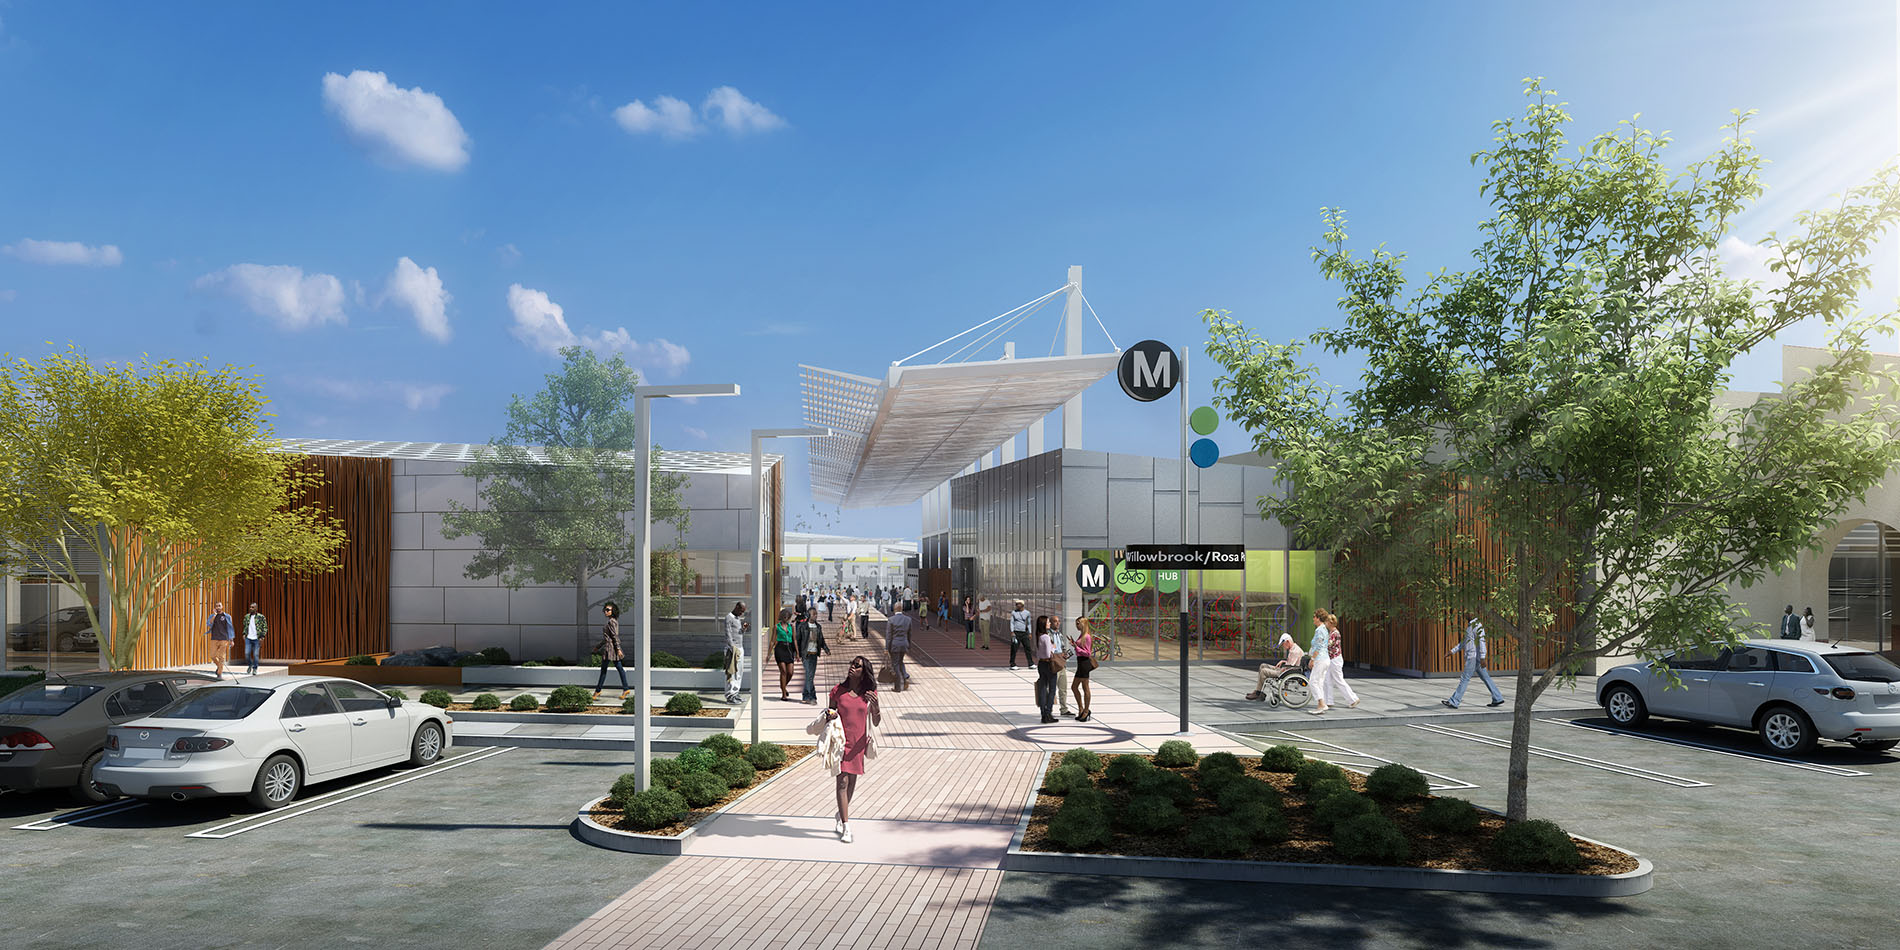 A Gateway into Willowbrook: This revitalized regional facility will be more efficient and intuitive, and will provide users with superior access to local and regional destinations and amenities.